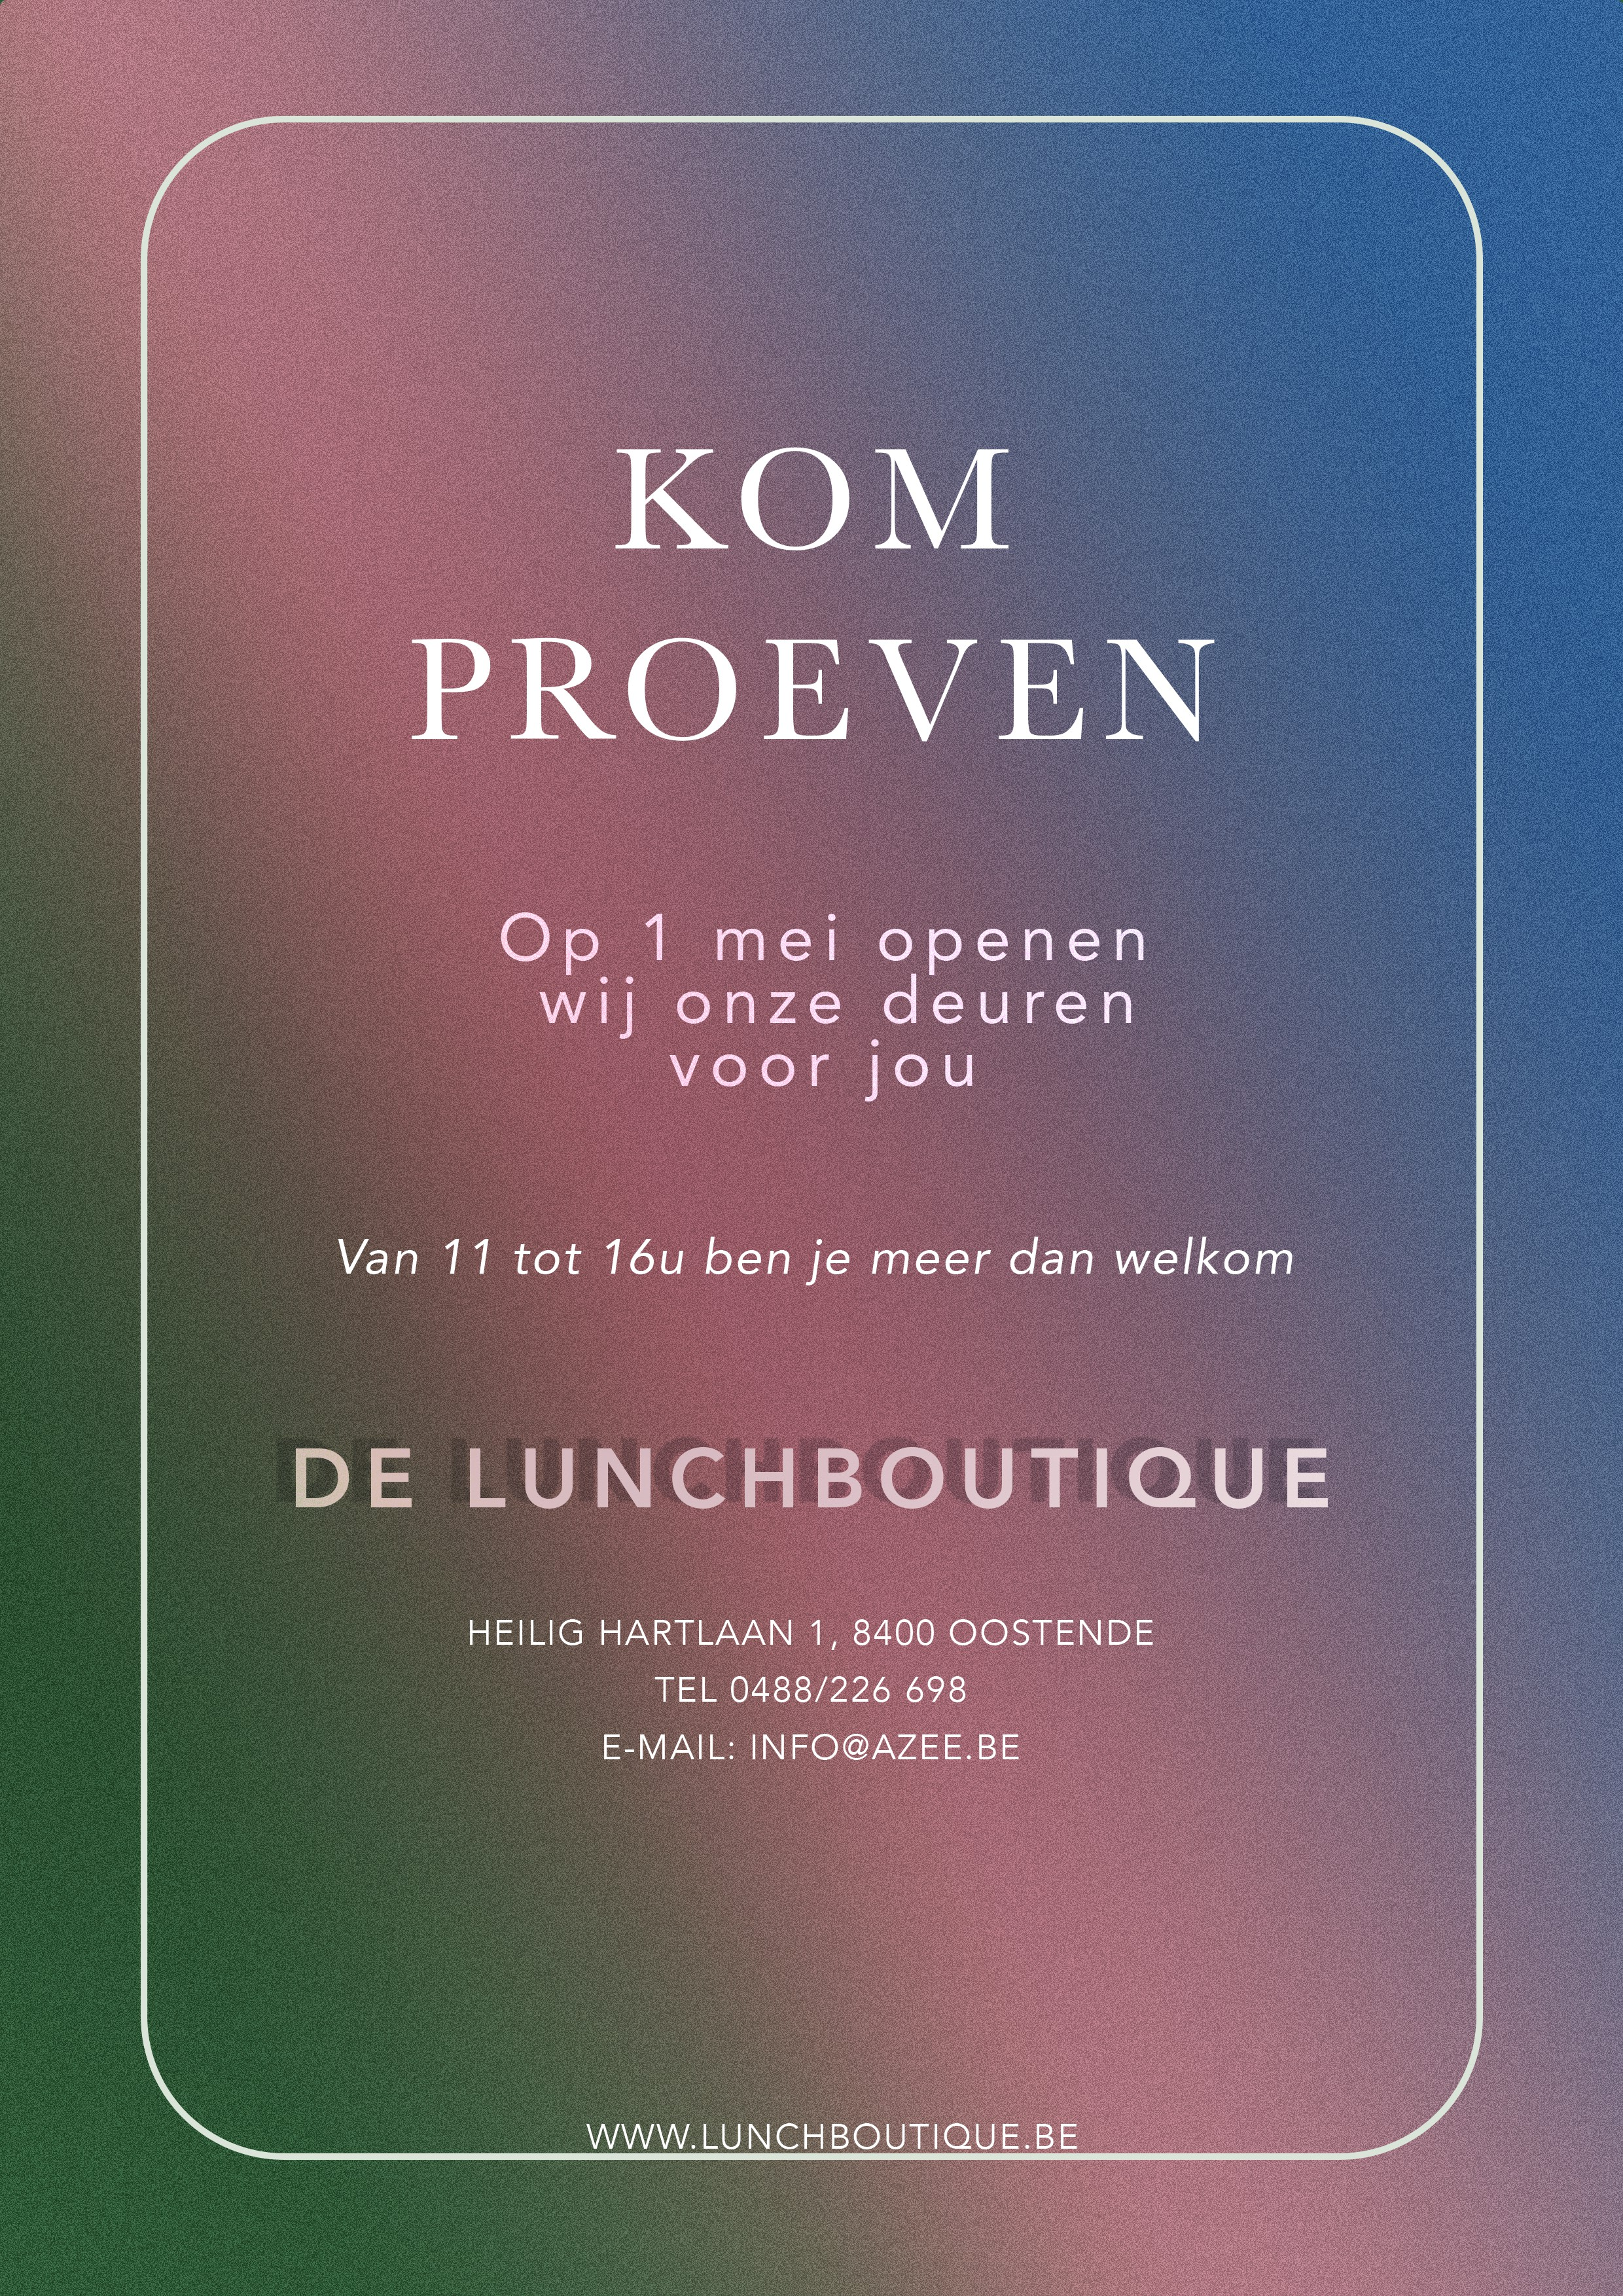 Delicious flyer for new restaurant in Ostende